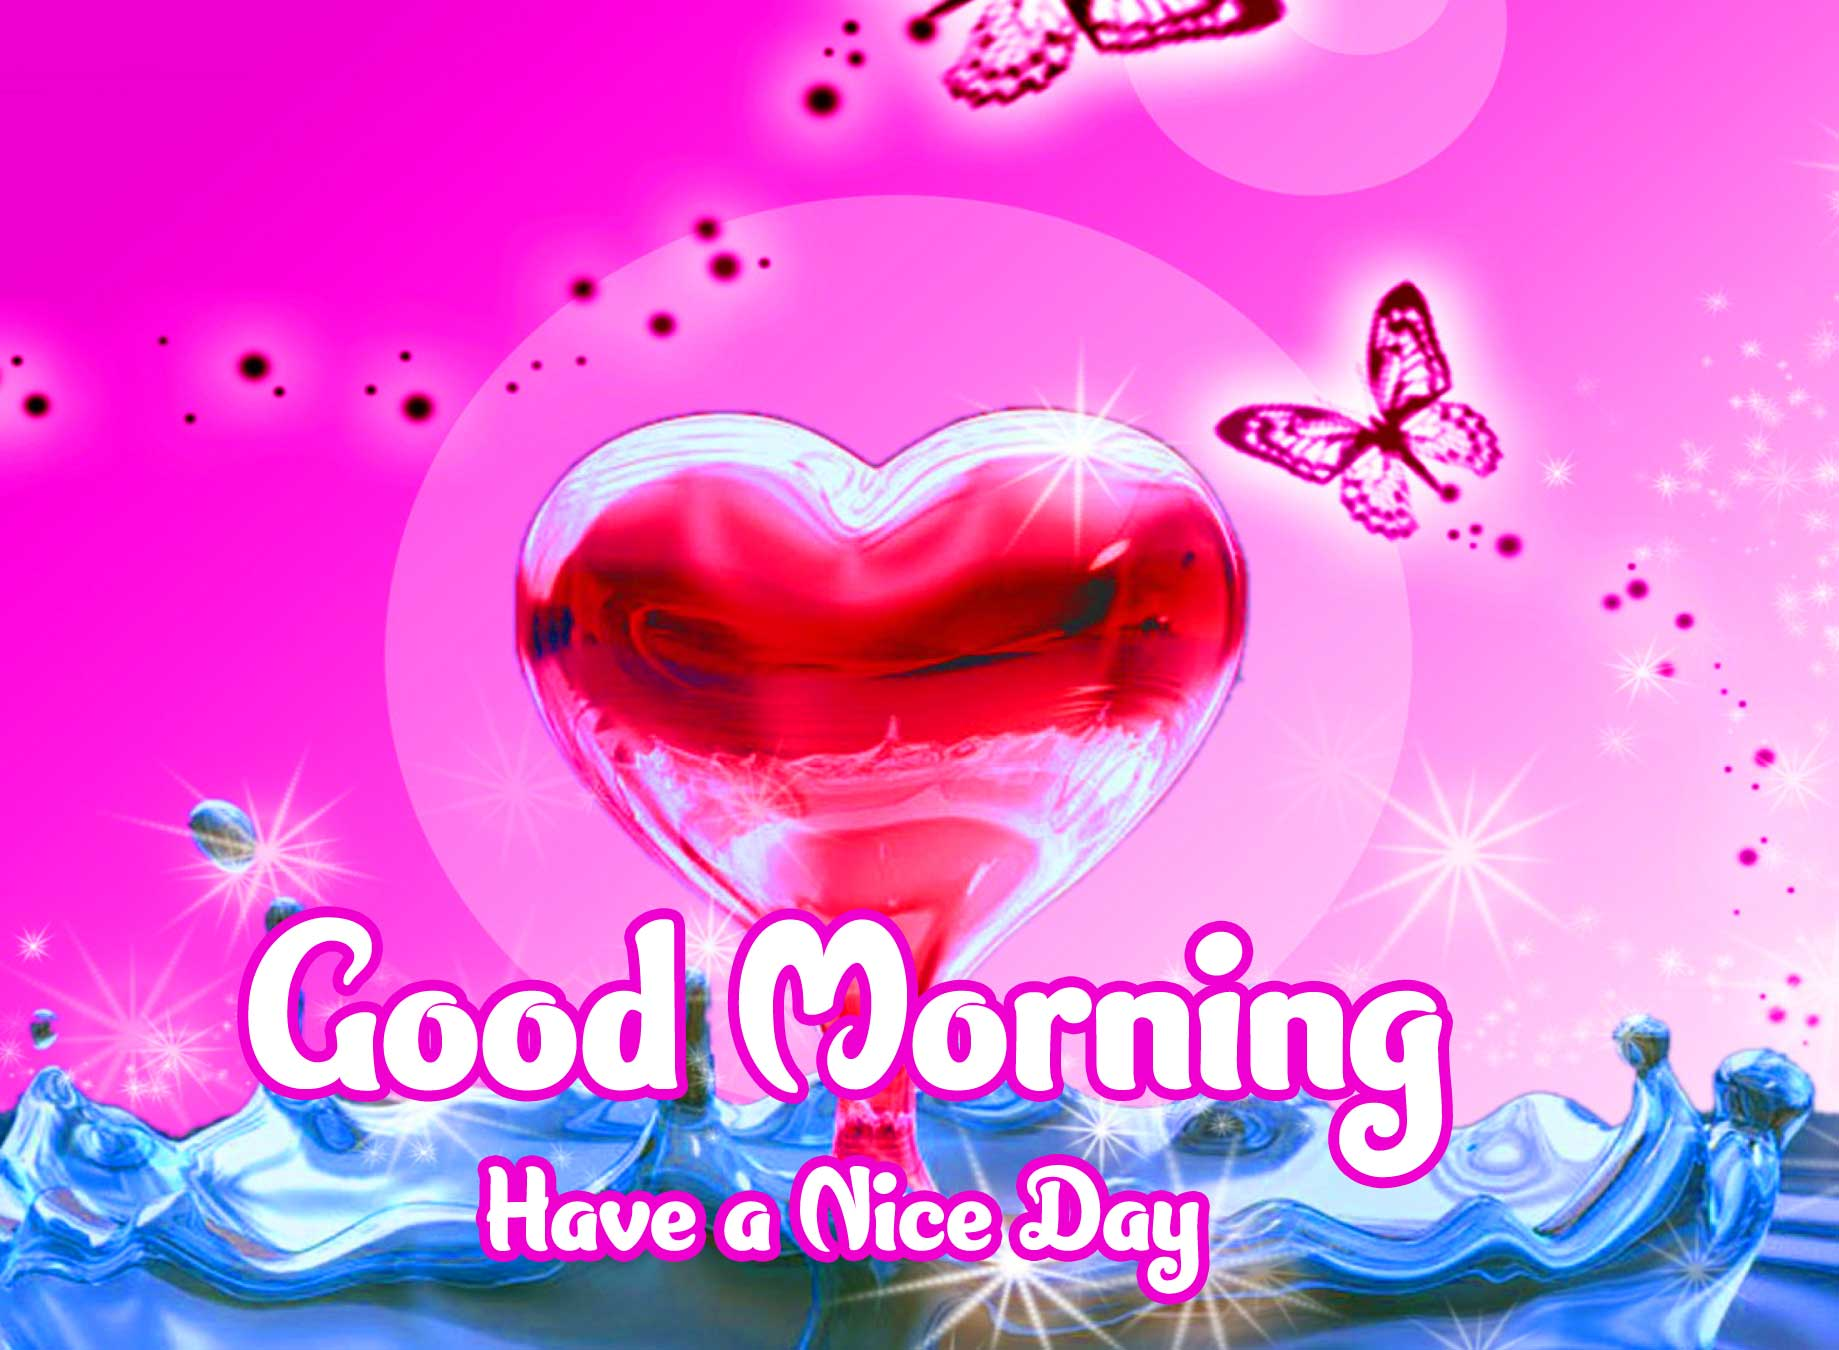 Amazing 1080 p Good Morning 4k ImagesPics Pictures Download